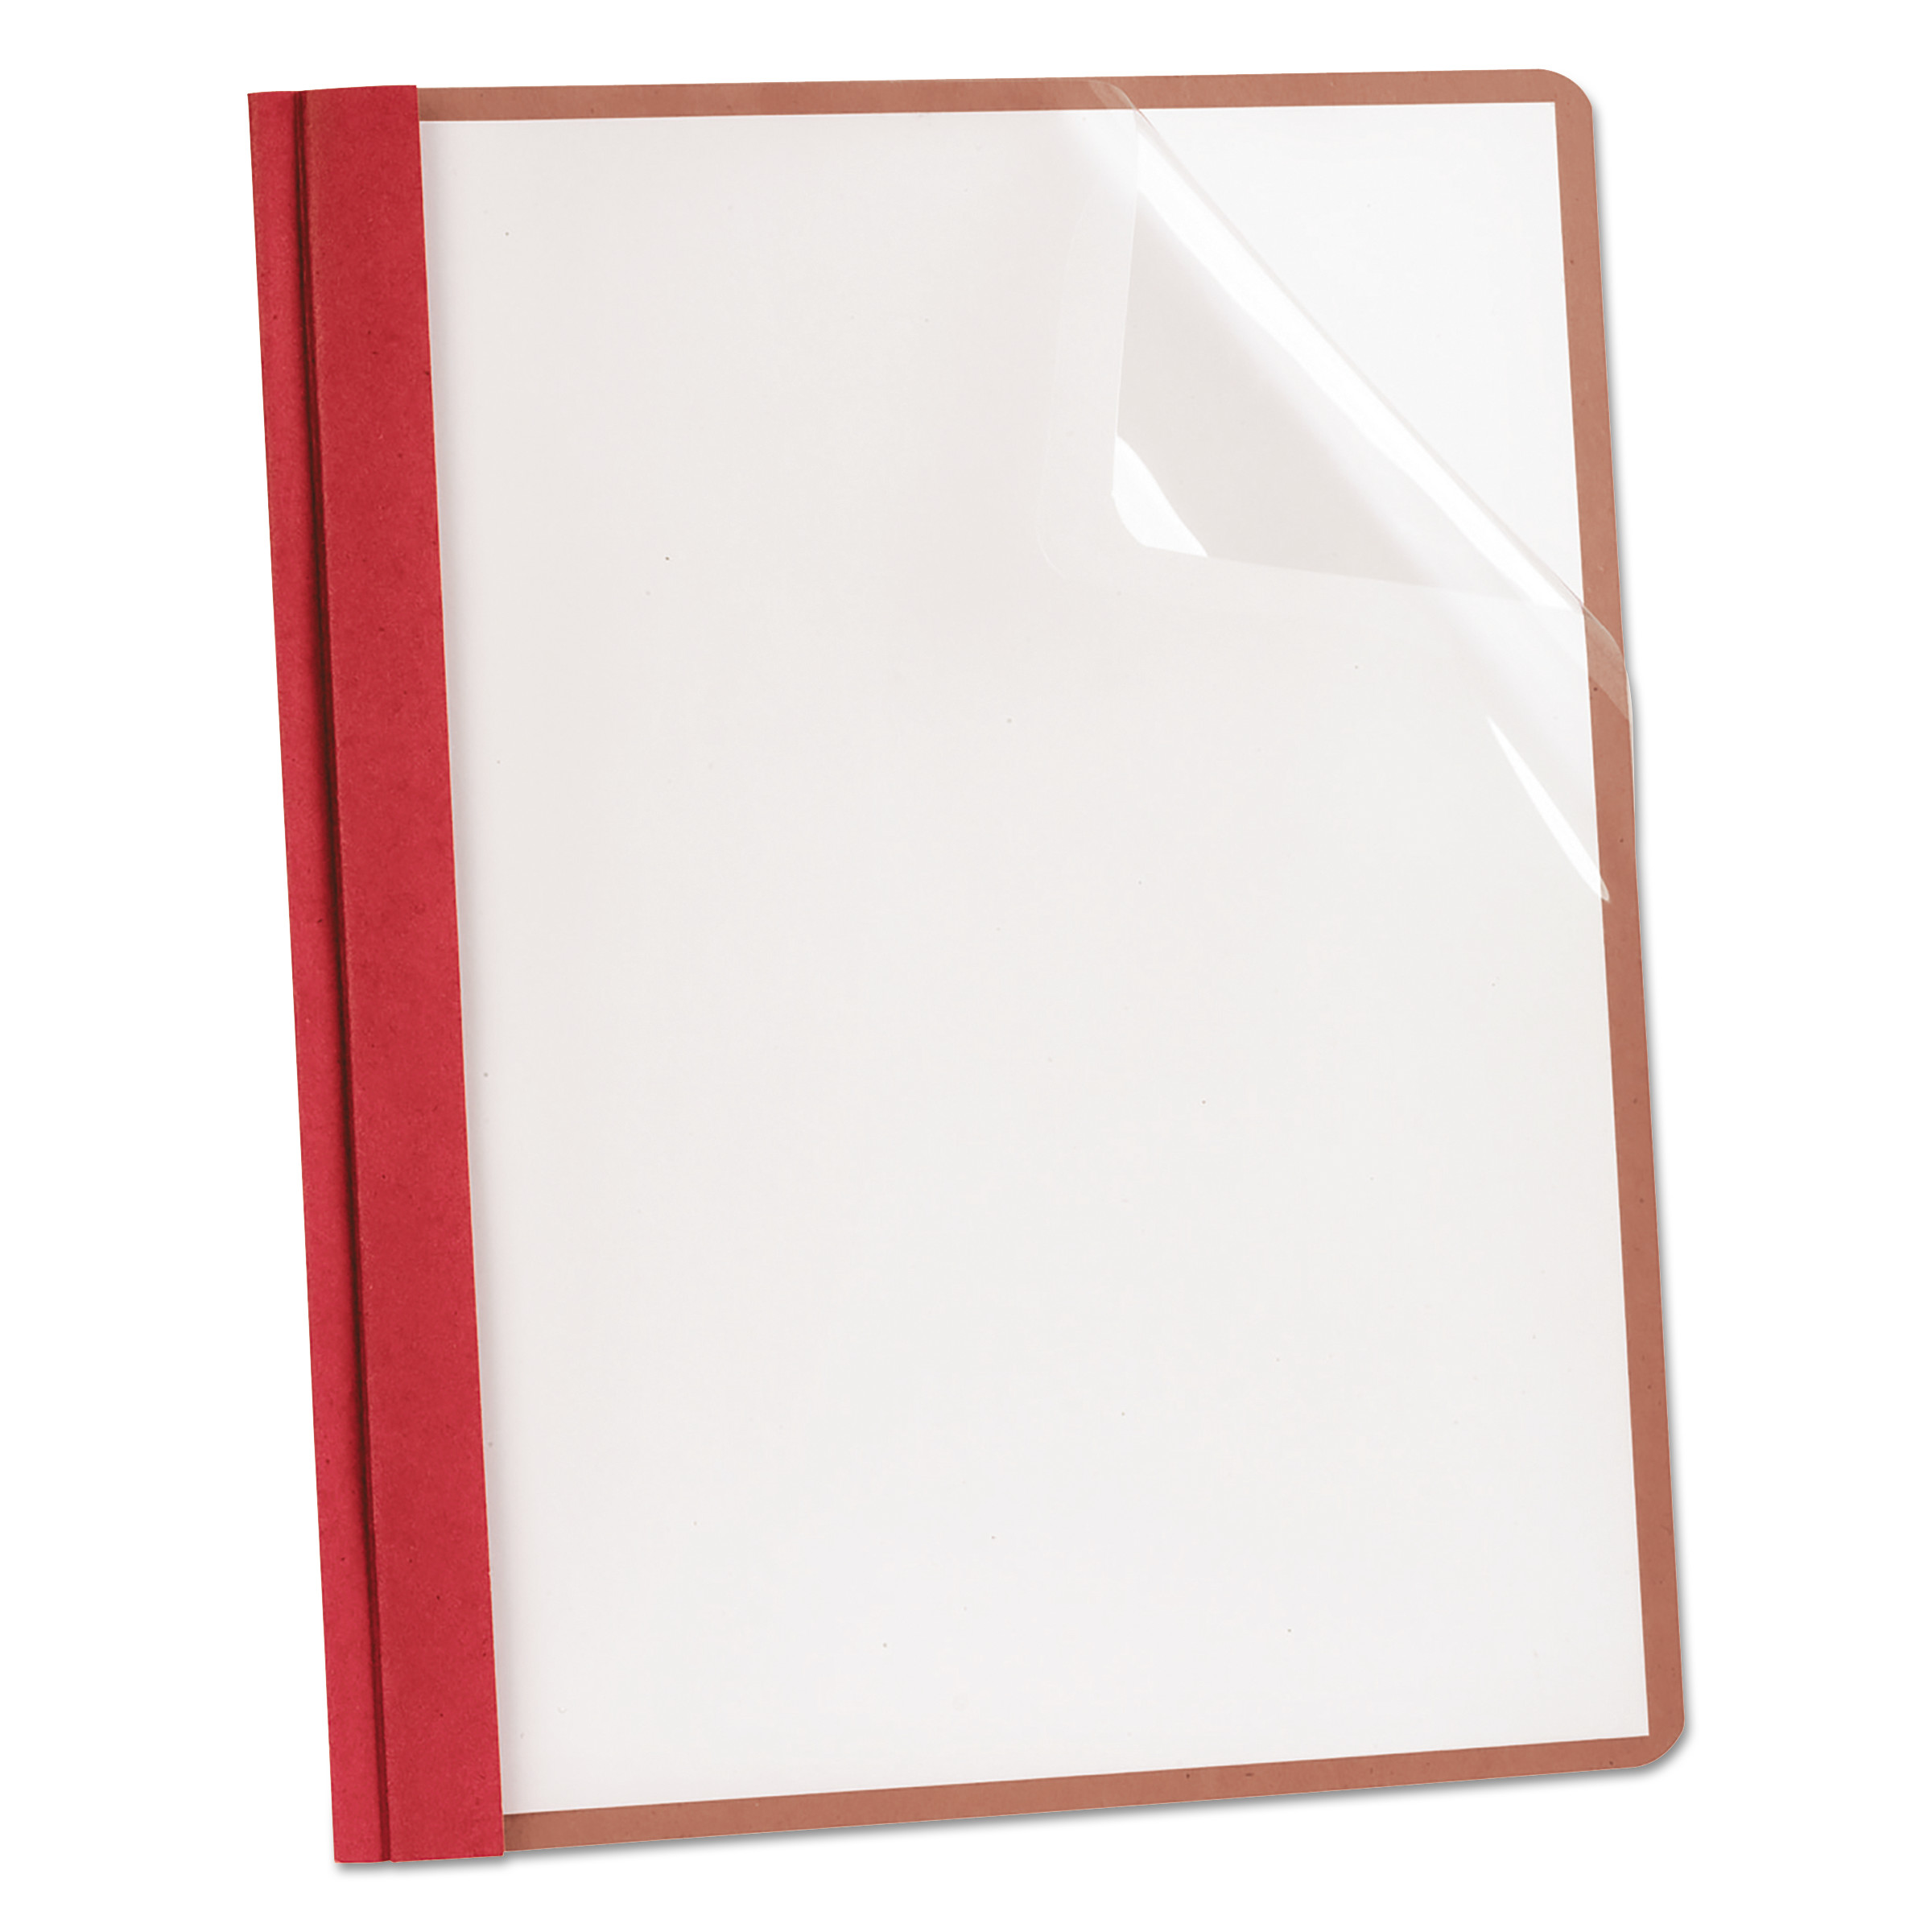 Earthwise by Oxford Recycled Clear Front Report Covers, Letter Size, Red, 25 Box -OXF57871 by TOPS BUSINESS FORMS